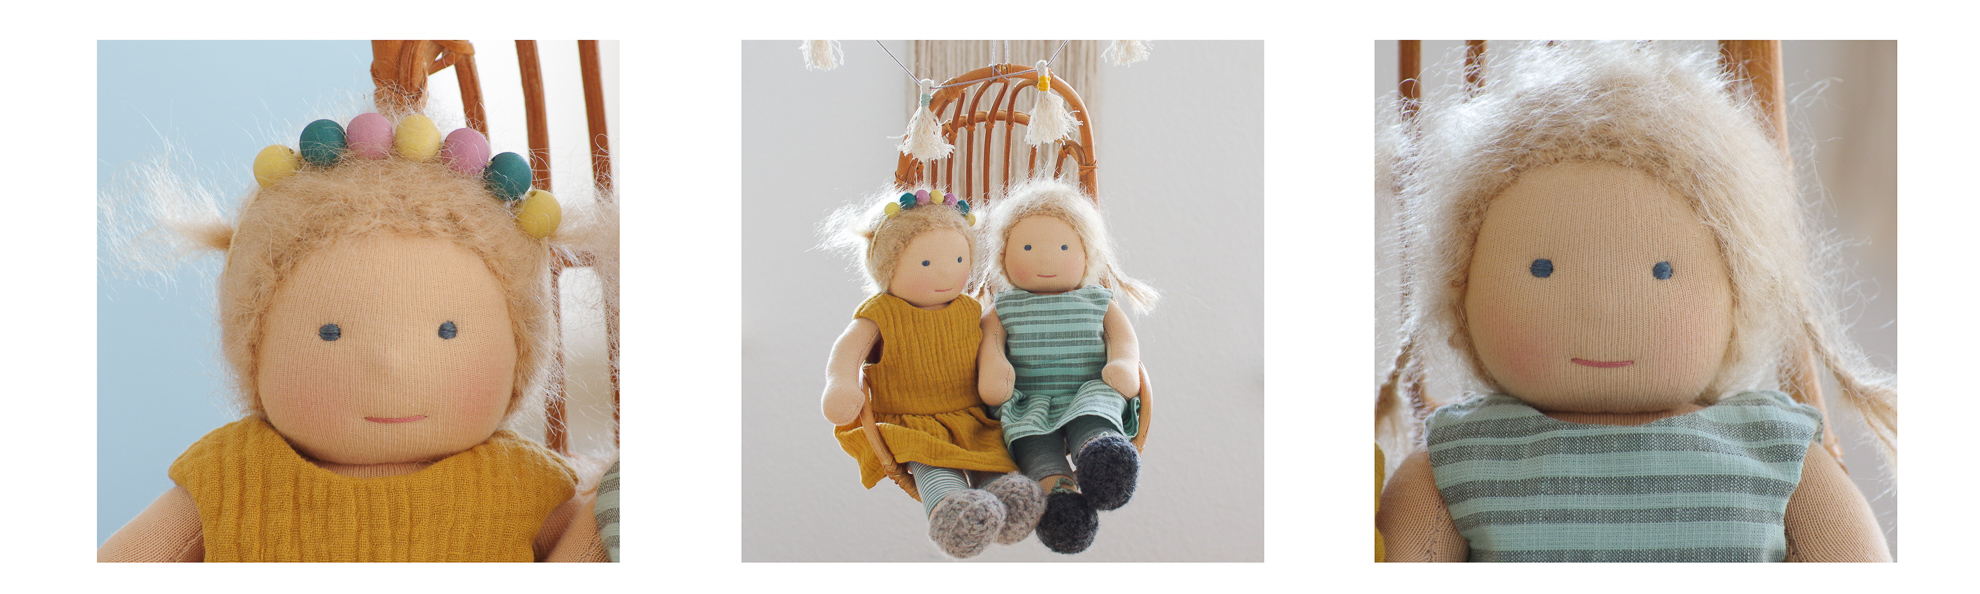 custom handmade dolls made from natural materials sitting in a lounge chair